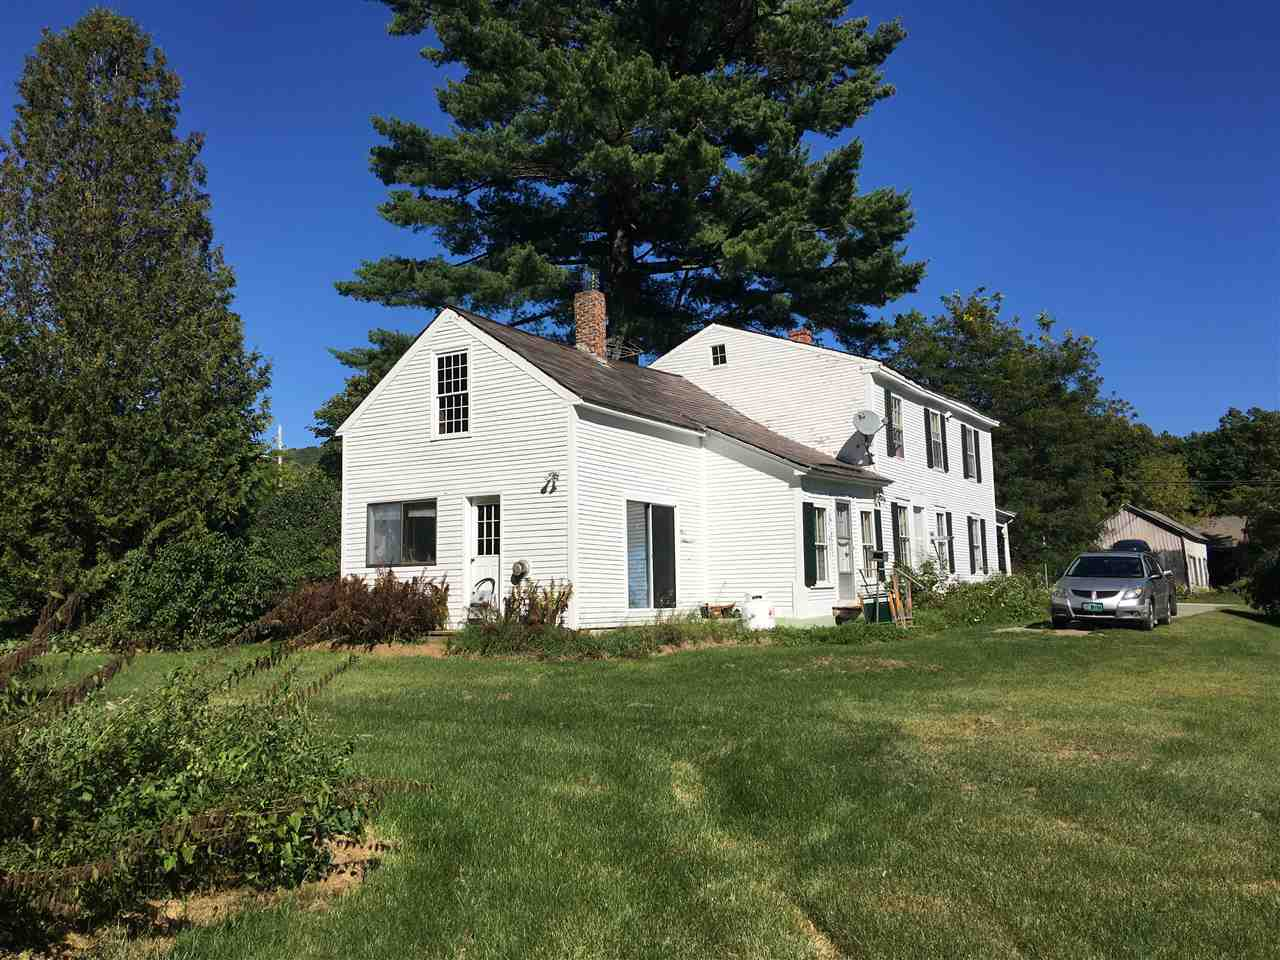 MIDDLETOWN SPRINGS VT Home for sale $$175,000 | $74 per sq.ft.